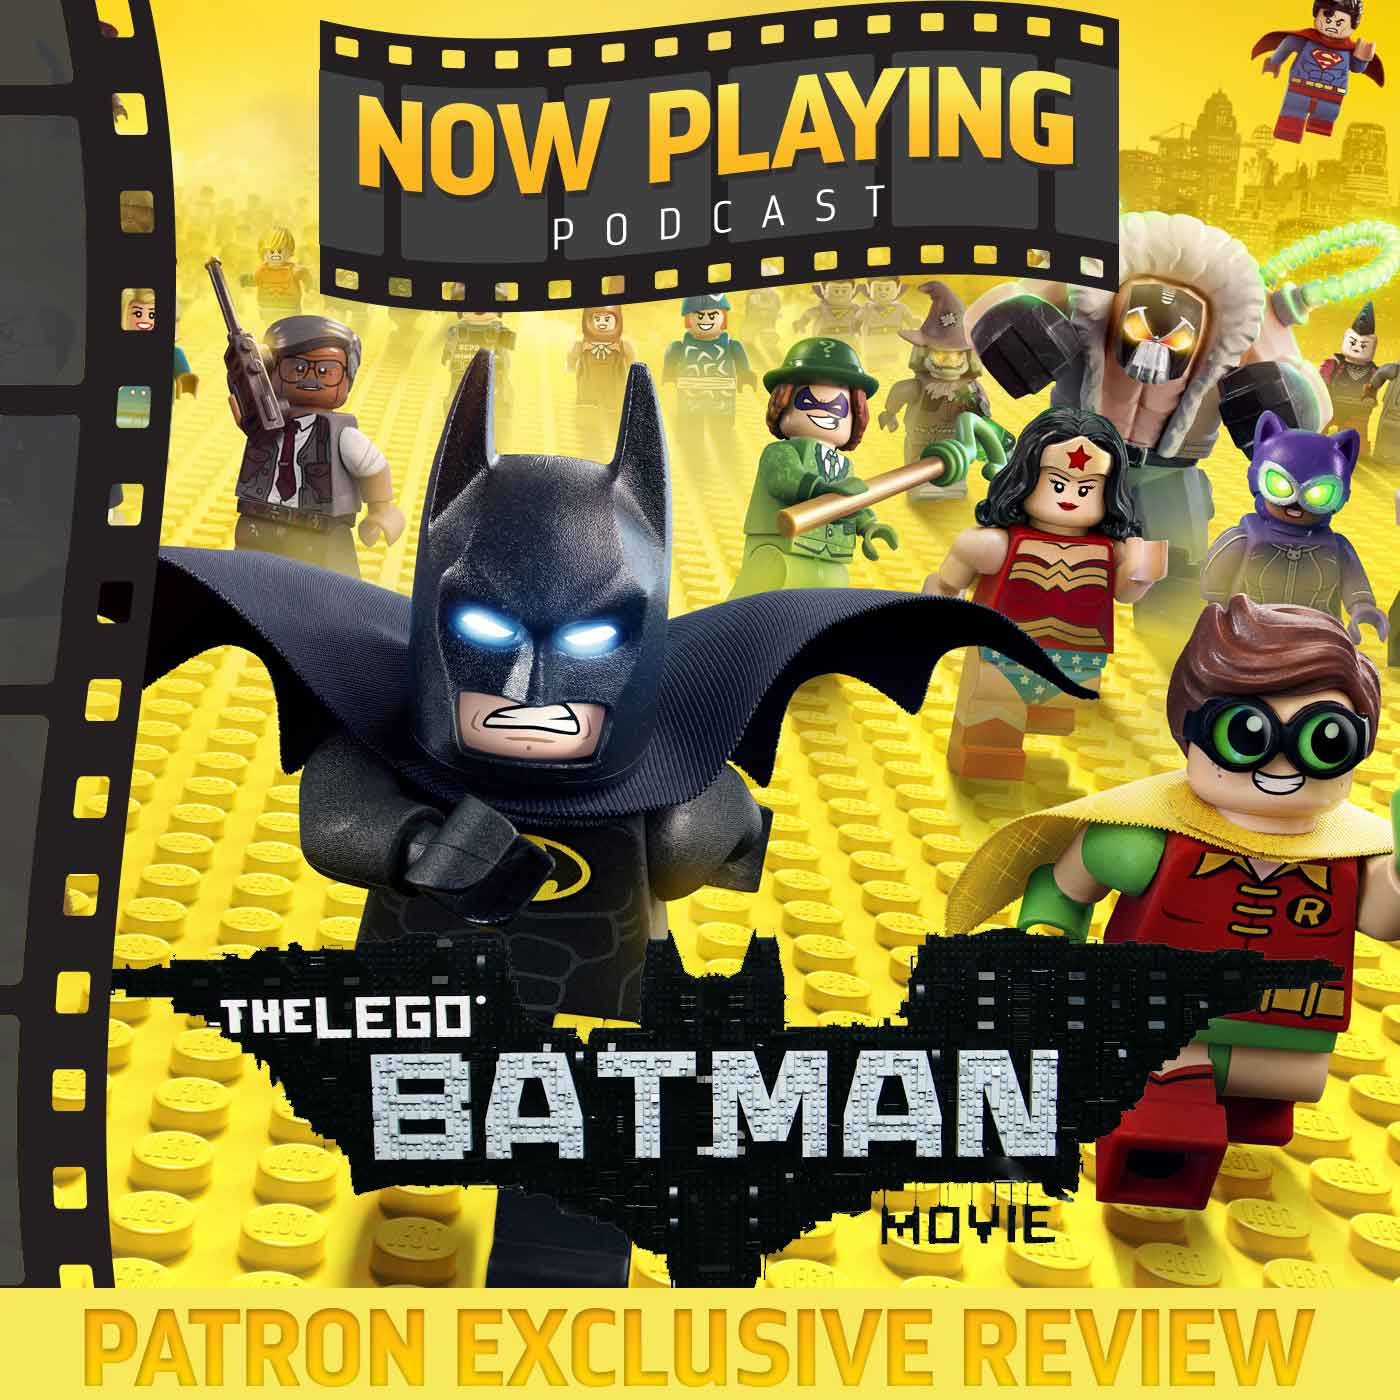 The LEGO Batman Movie - Patron Exclusive Review